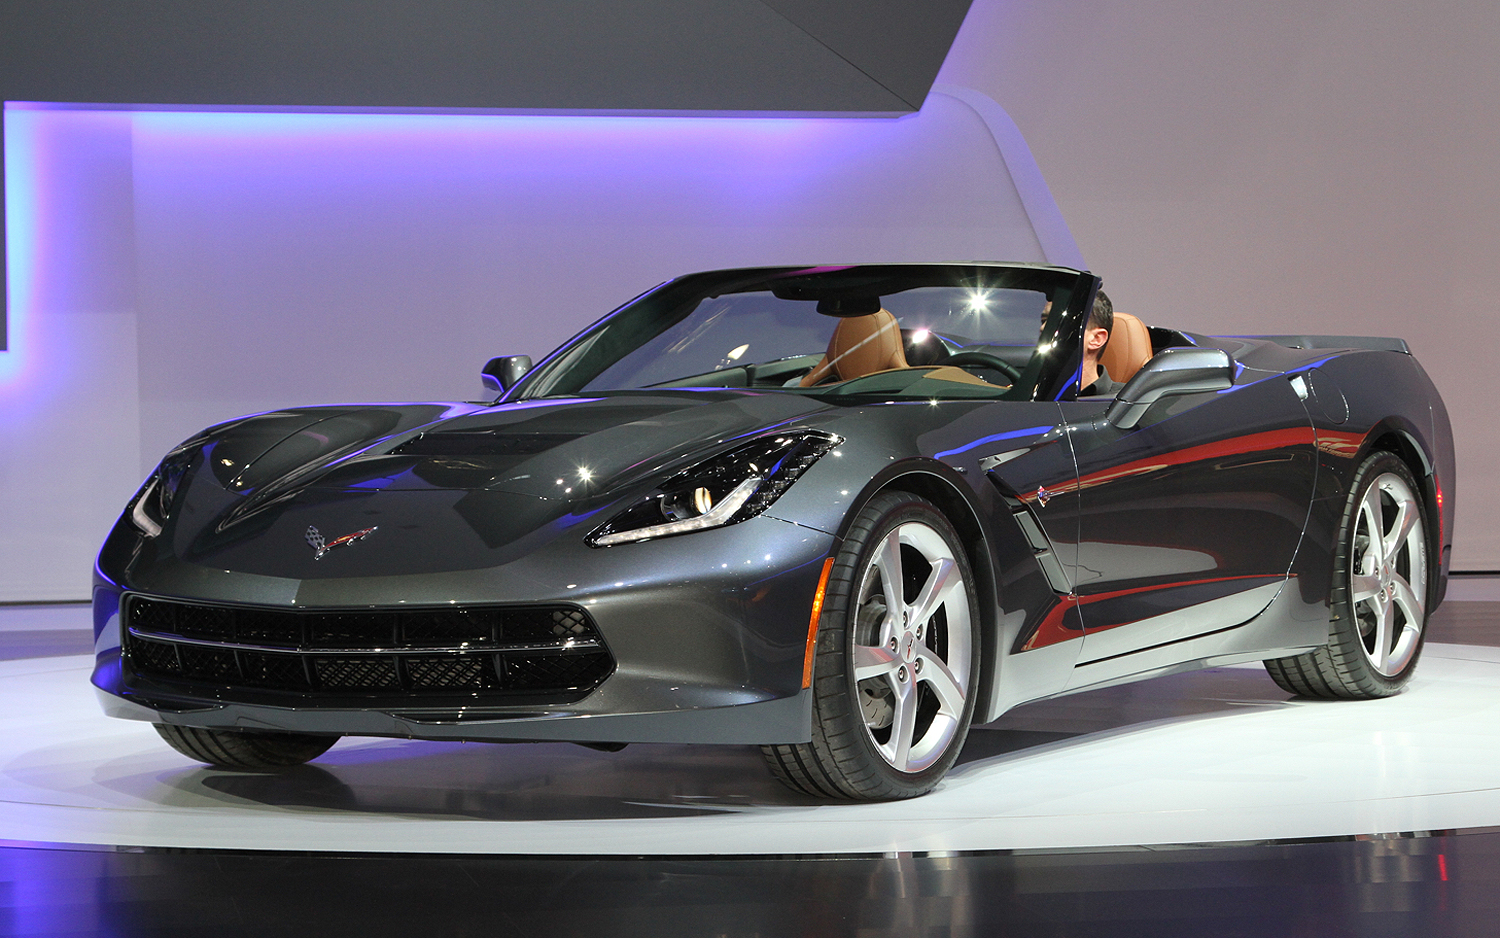 2014 Corvette Stingray Black Convertible